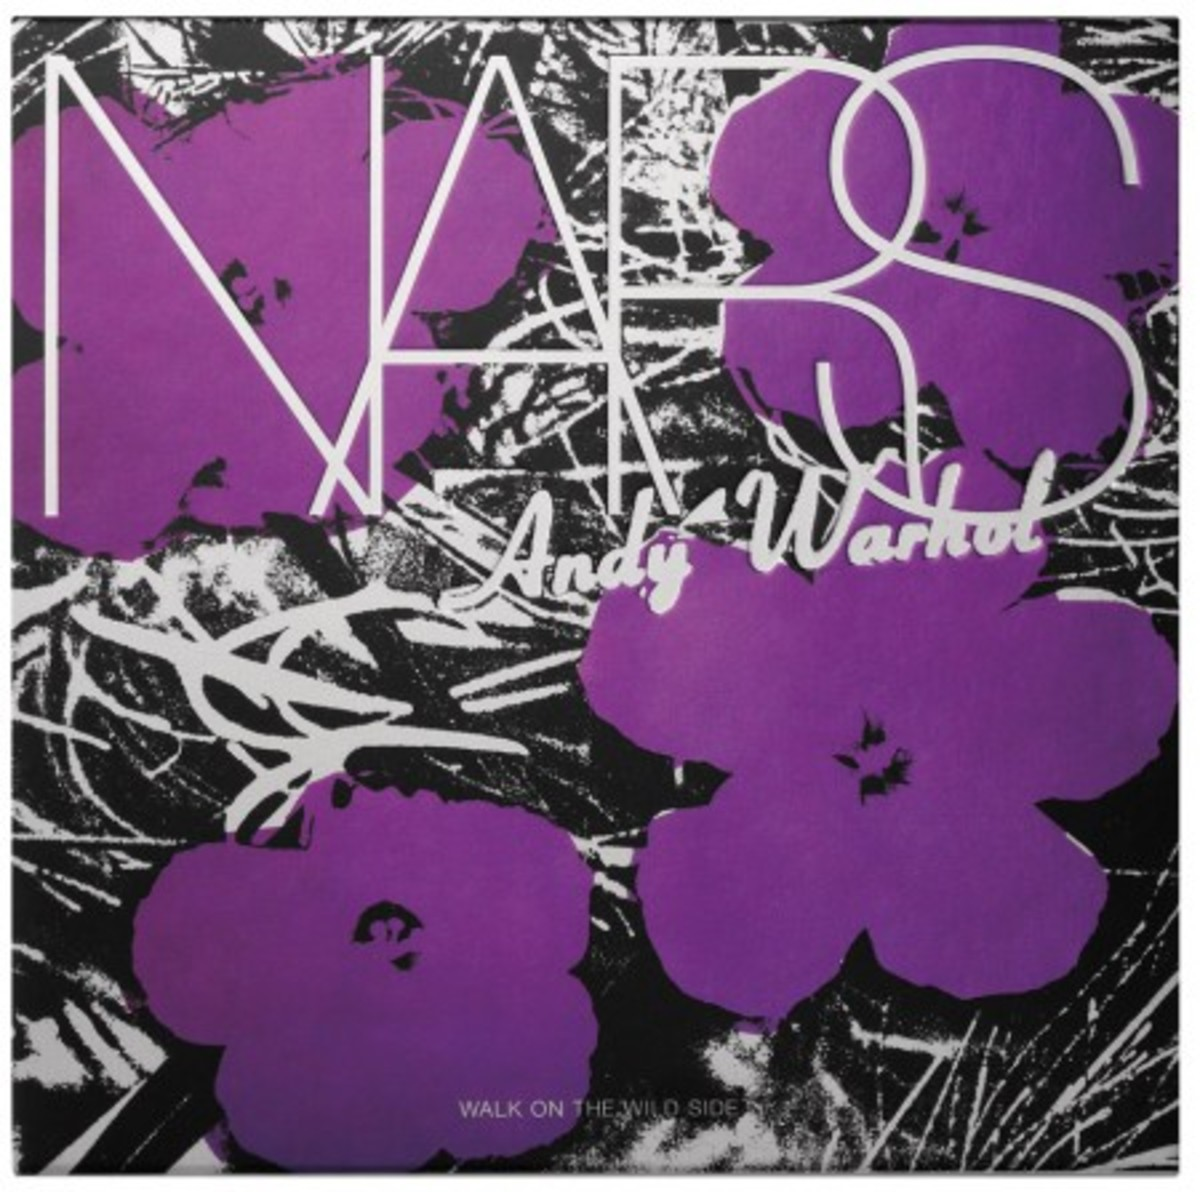 NARS-Andy-Warhol_Sephora_Walk-on-the-Wild-Side_front-450x447